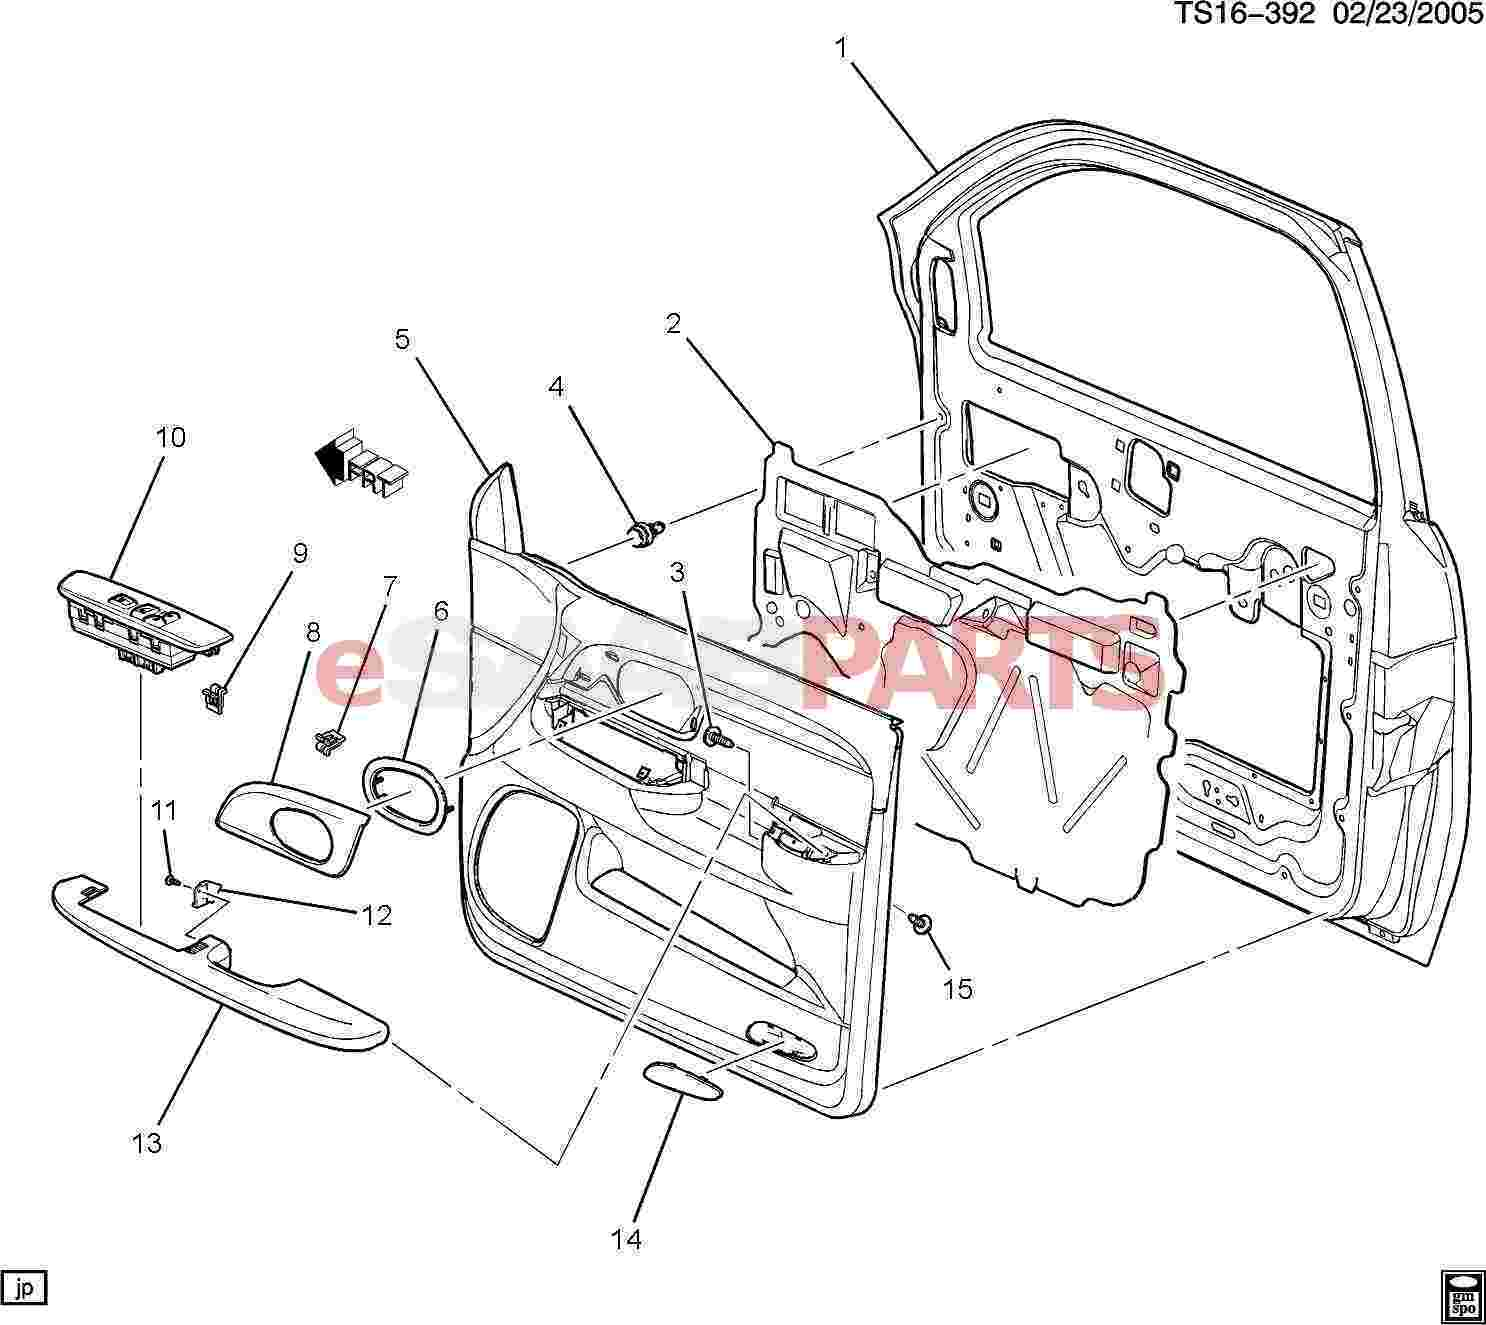 2002 Ford F150 Rear Suspension Diagram also 96specs together with Cid 999500865 moreover Car Exterior Parts Diagram also Seat Belt Mechanism Diagram. on car part names and diagrams